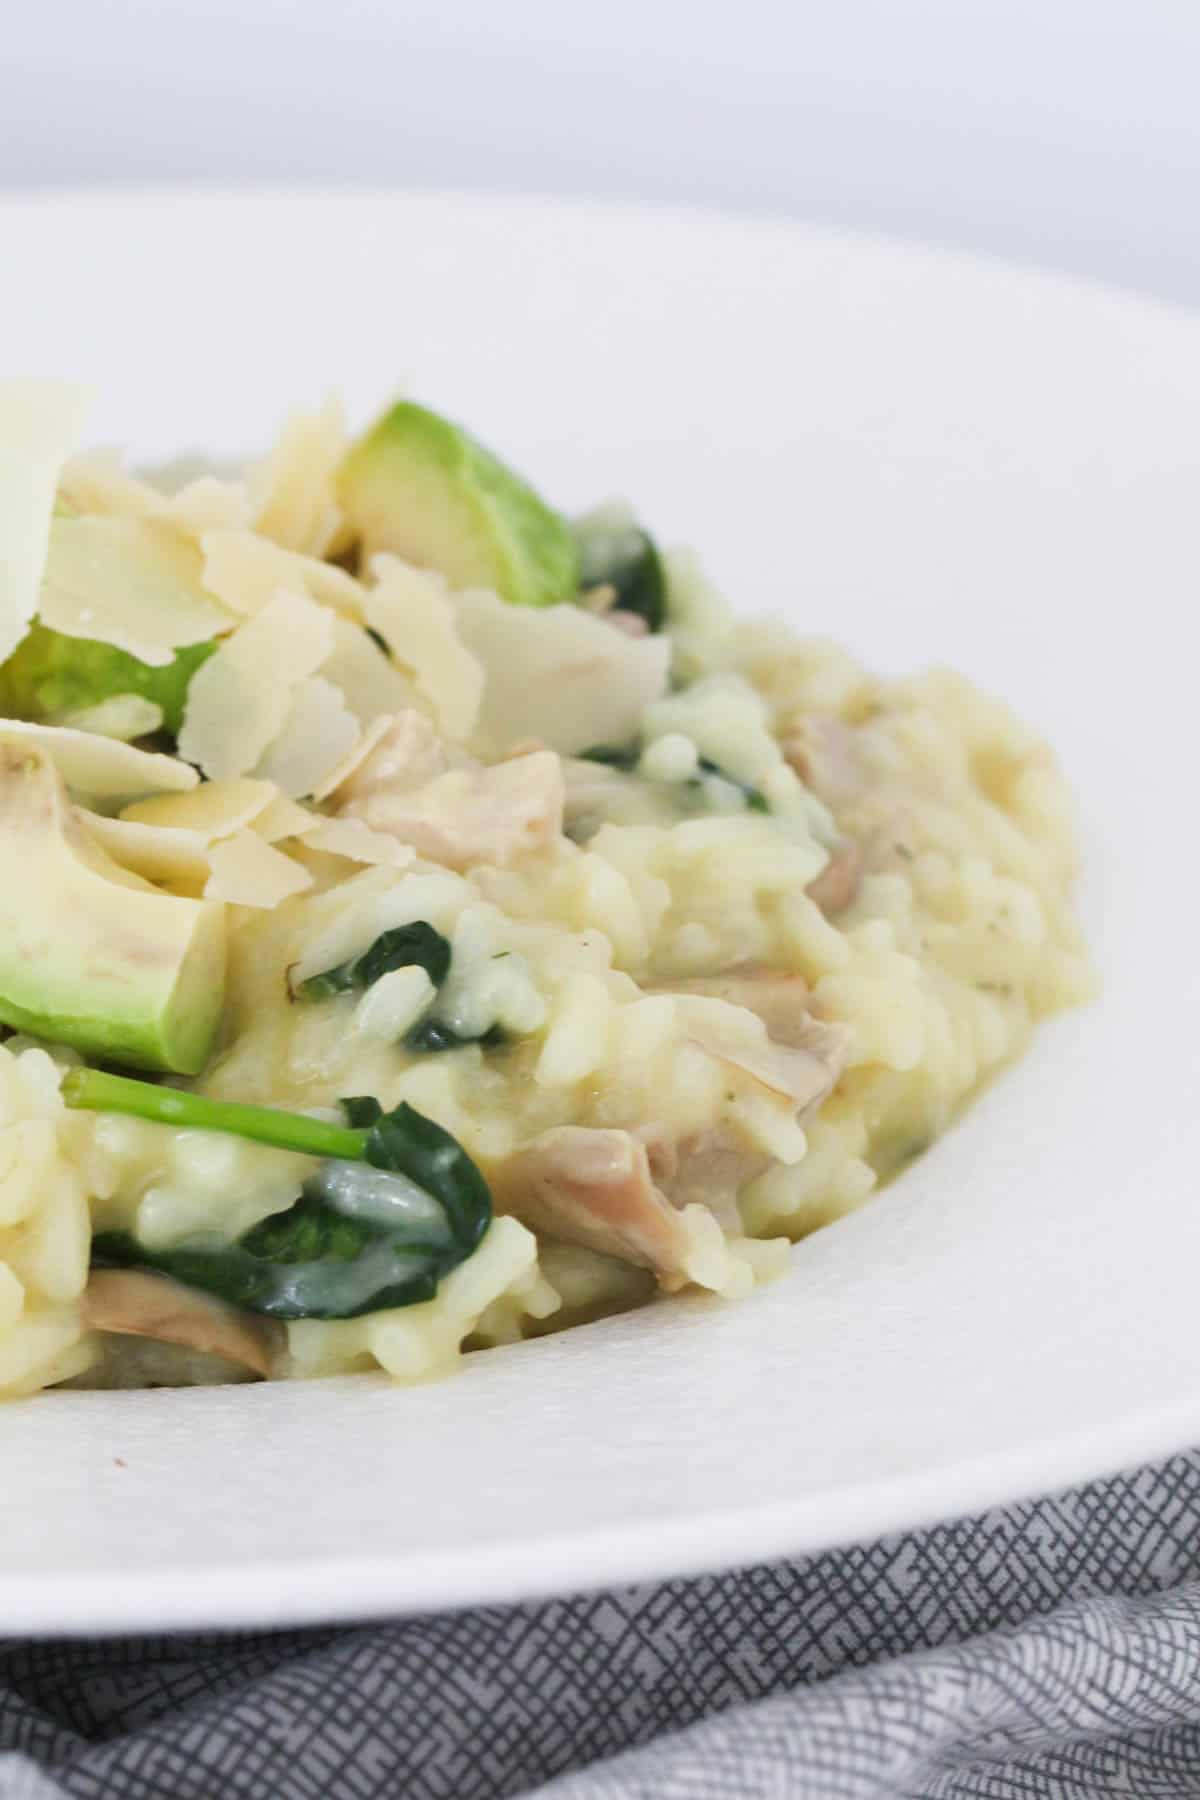 A close up of a bowl of risotto with chicken, mushrooms, spinach and avocado.